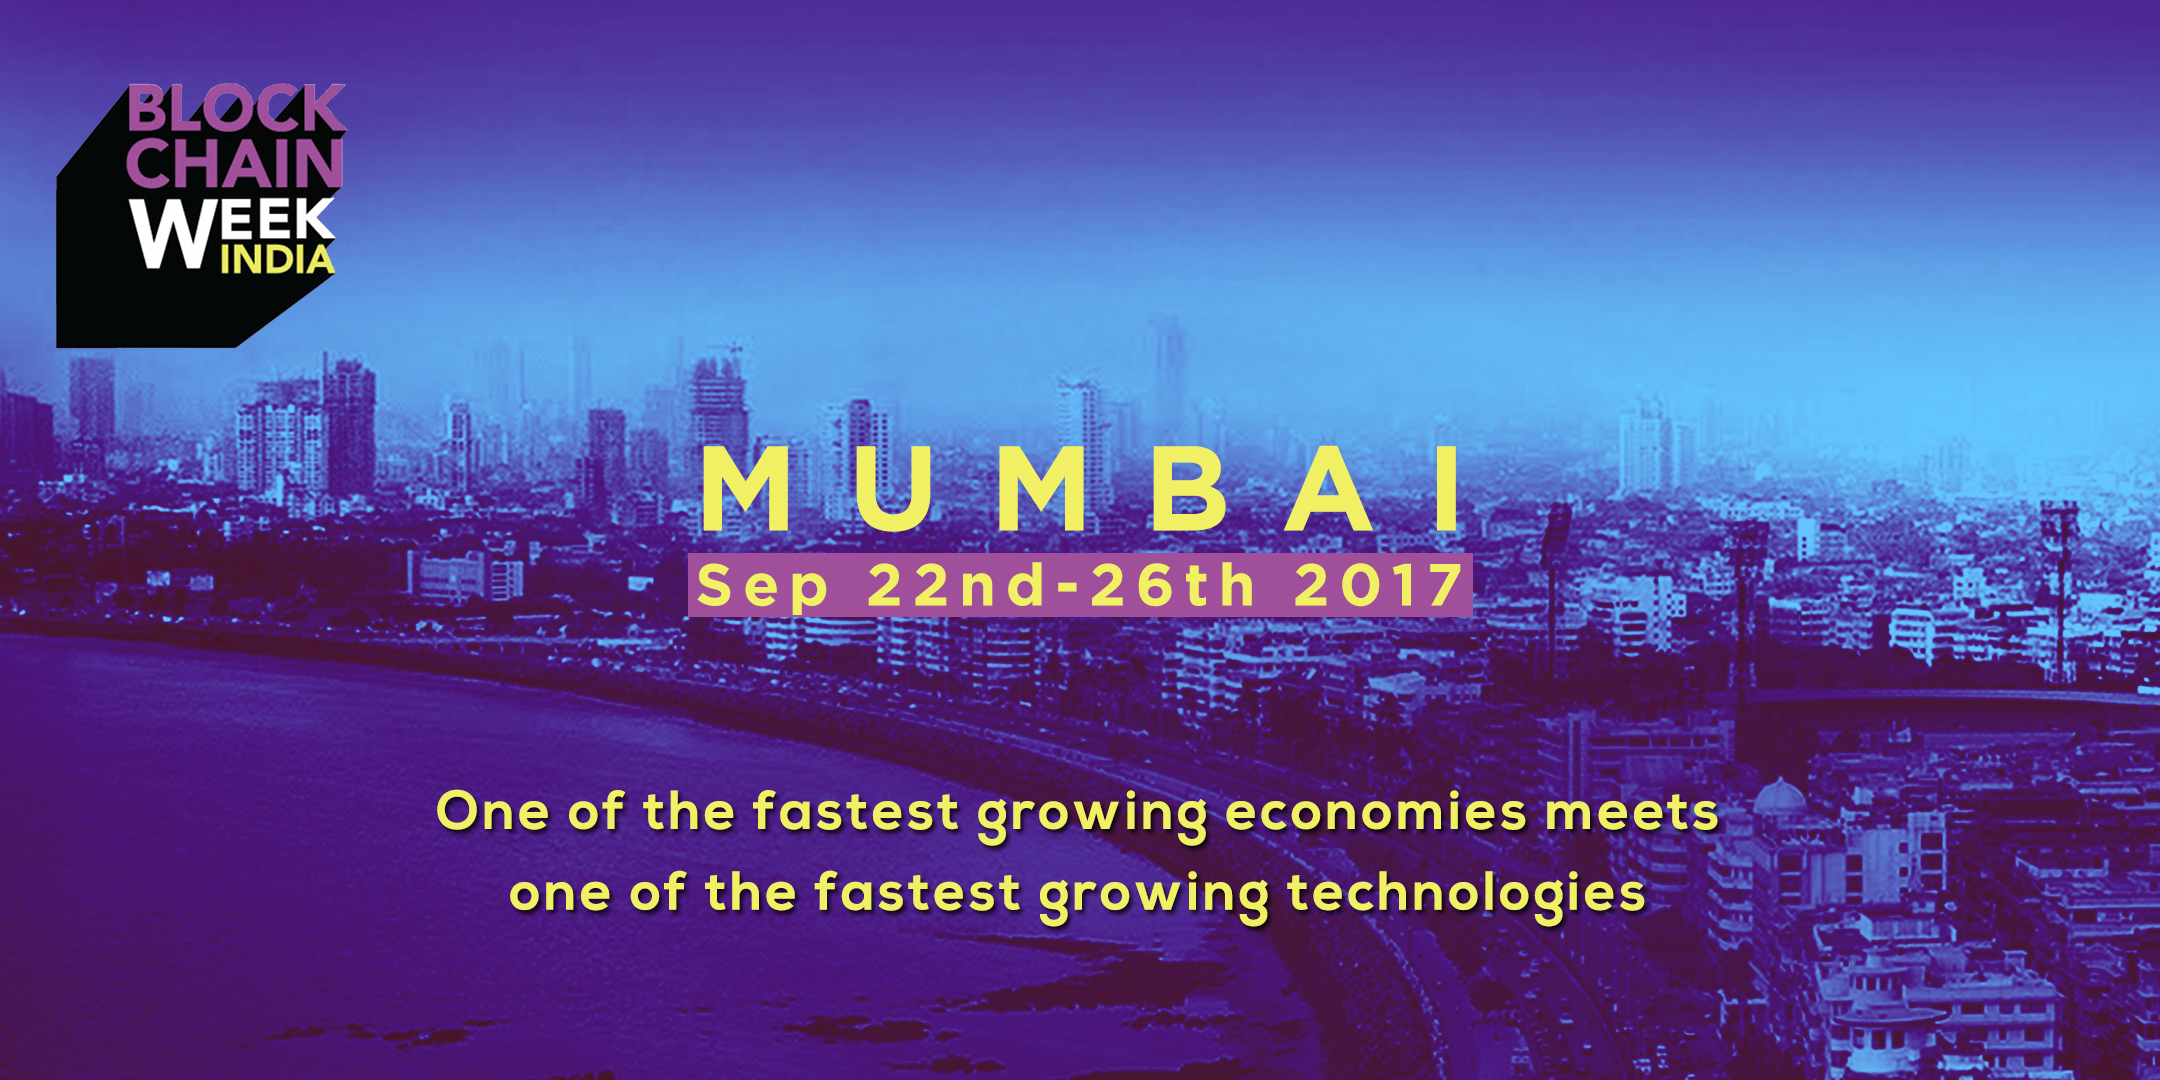 India All Set To Experience It's Biggest International Blockchain Event